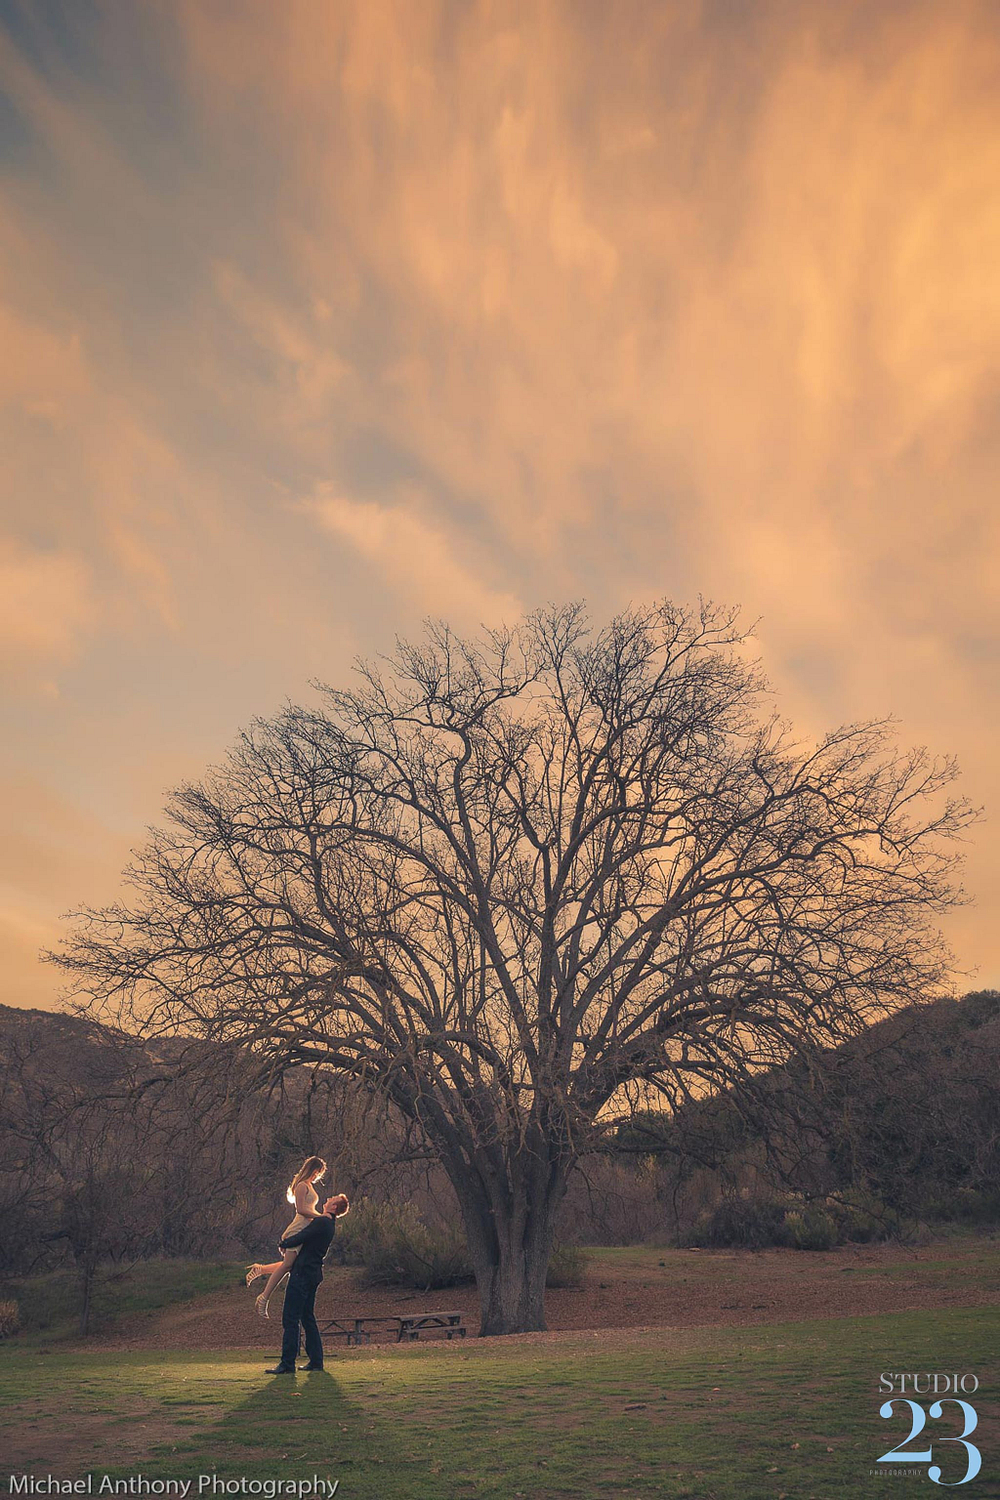 Paramount Ranch Engagement Session   Cody and Krystal, Michael Anthony Photography Blog: Los Angeles Wedding Photography